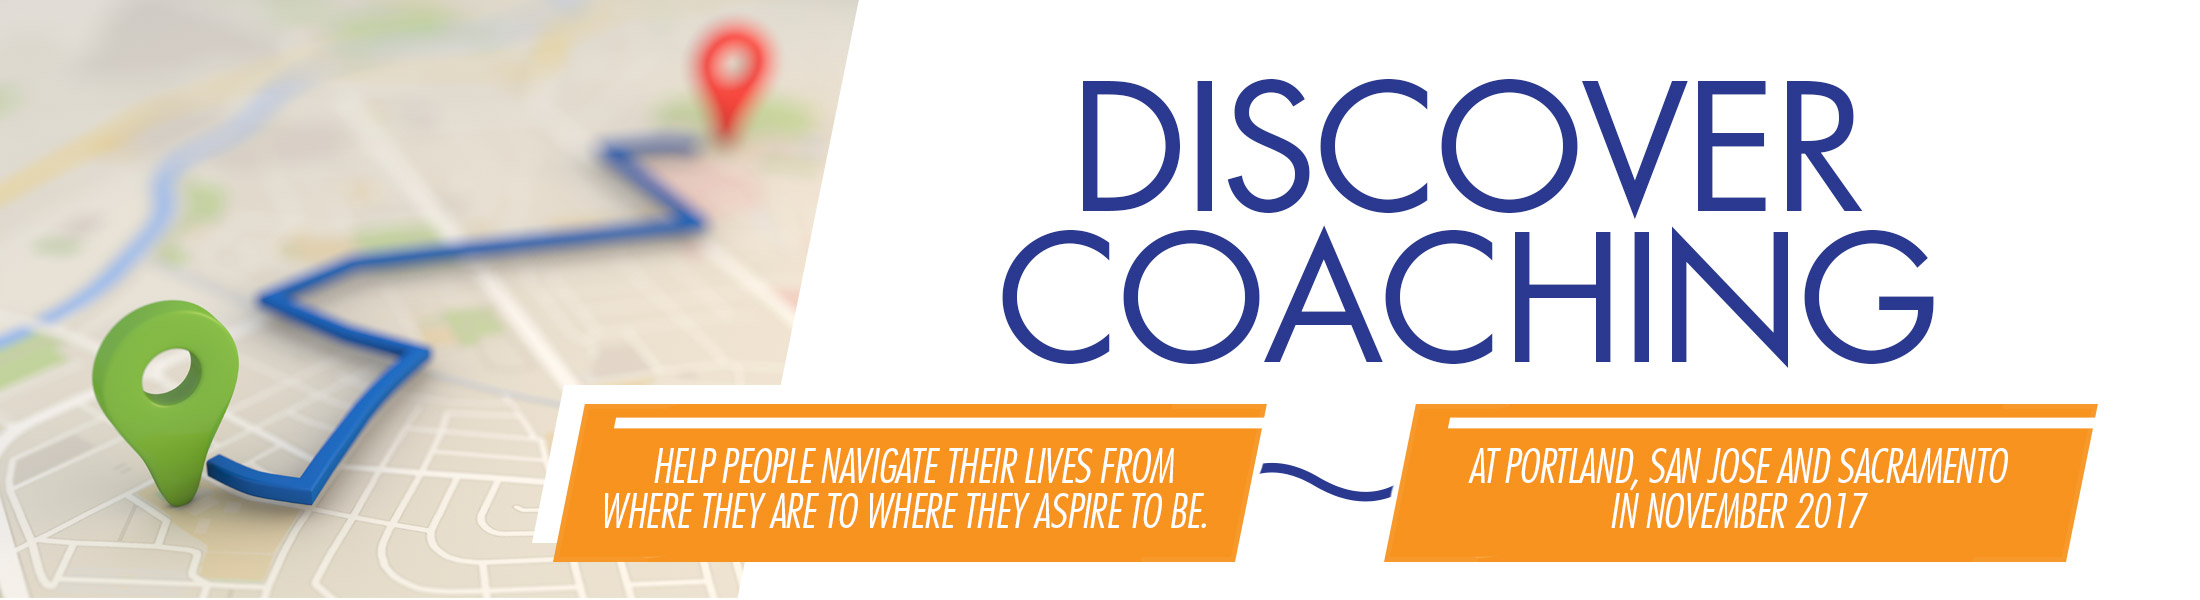 Discover Coaching Events at Portland, San Jose and Sacramento campuses this summer